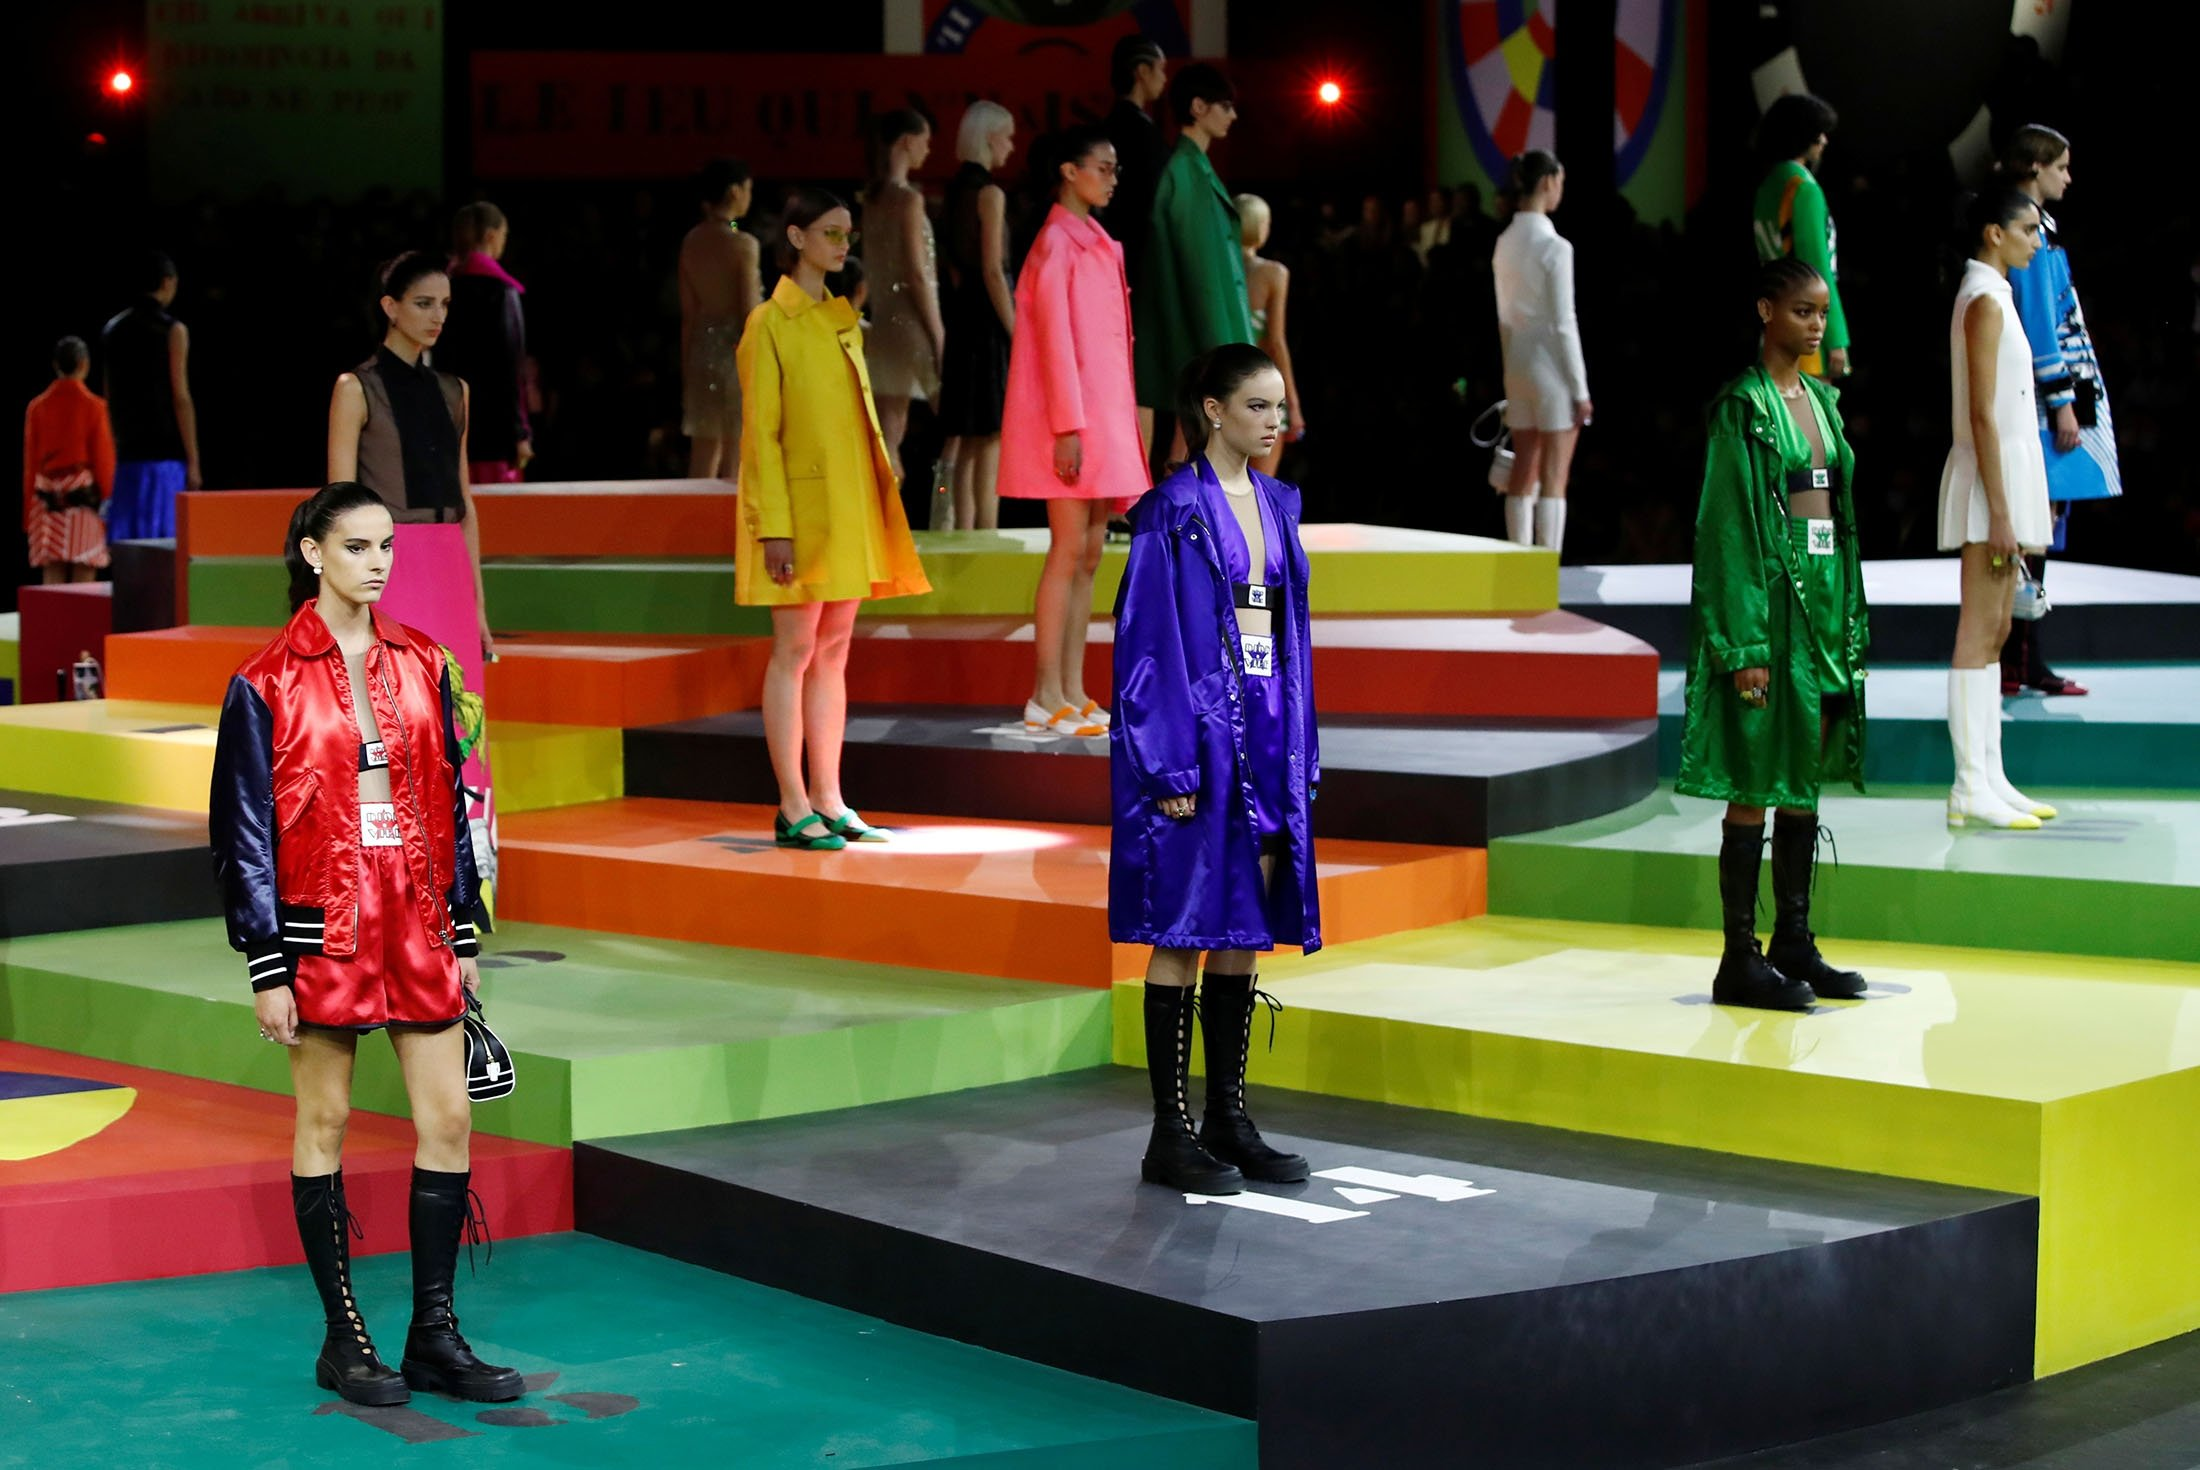 Models present creations by designer Maria Grazia Chiuri as part of fashion house Dior's show during Paris Fashion Week in Paris, France, Sept. 28, 2021. (Reuters Photo)